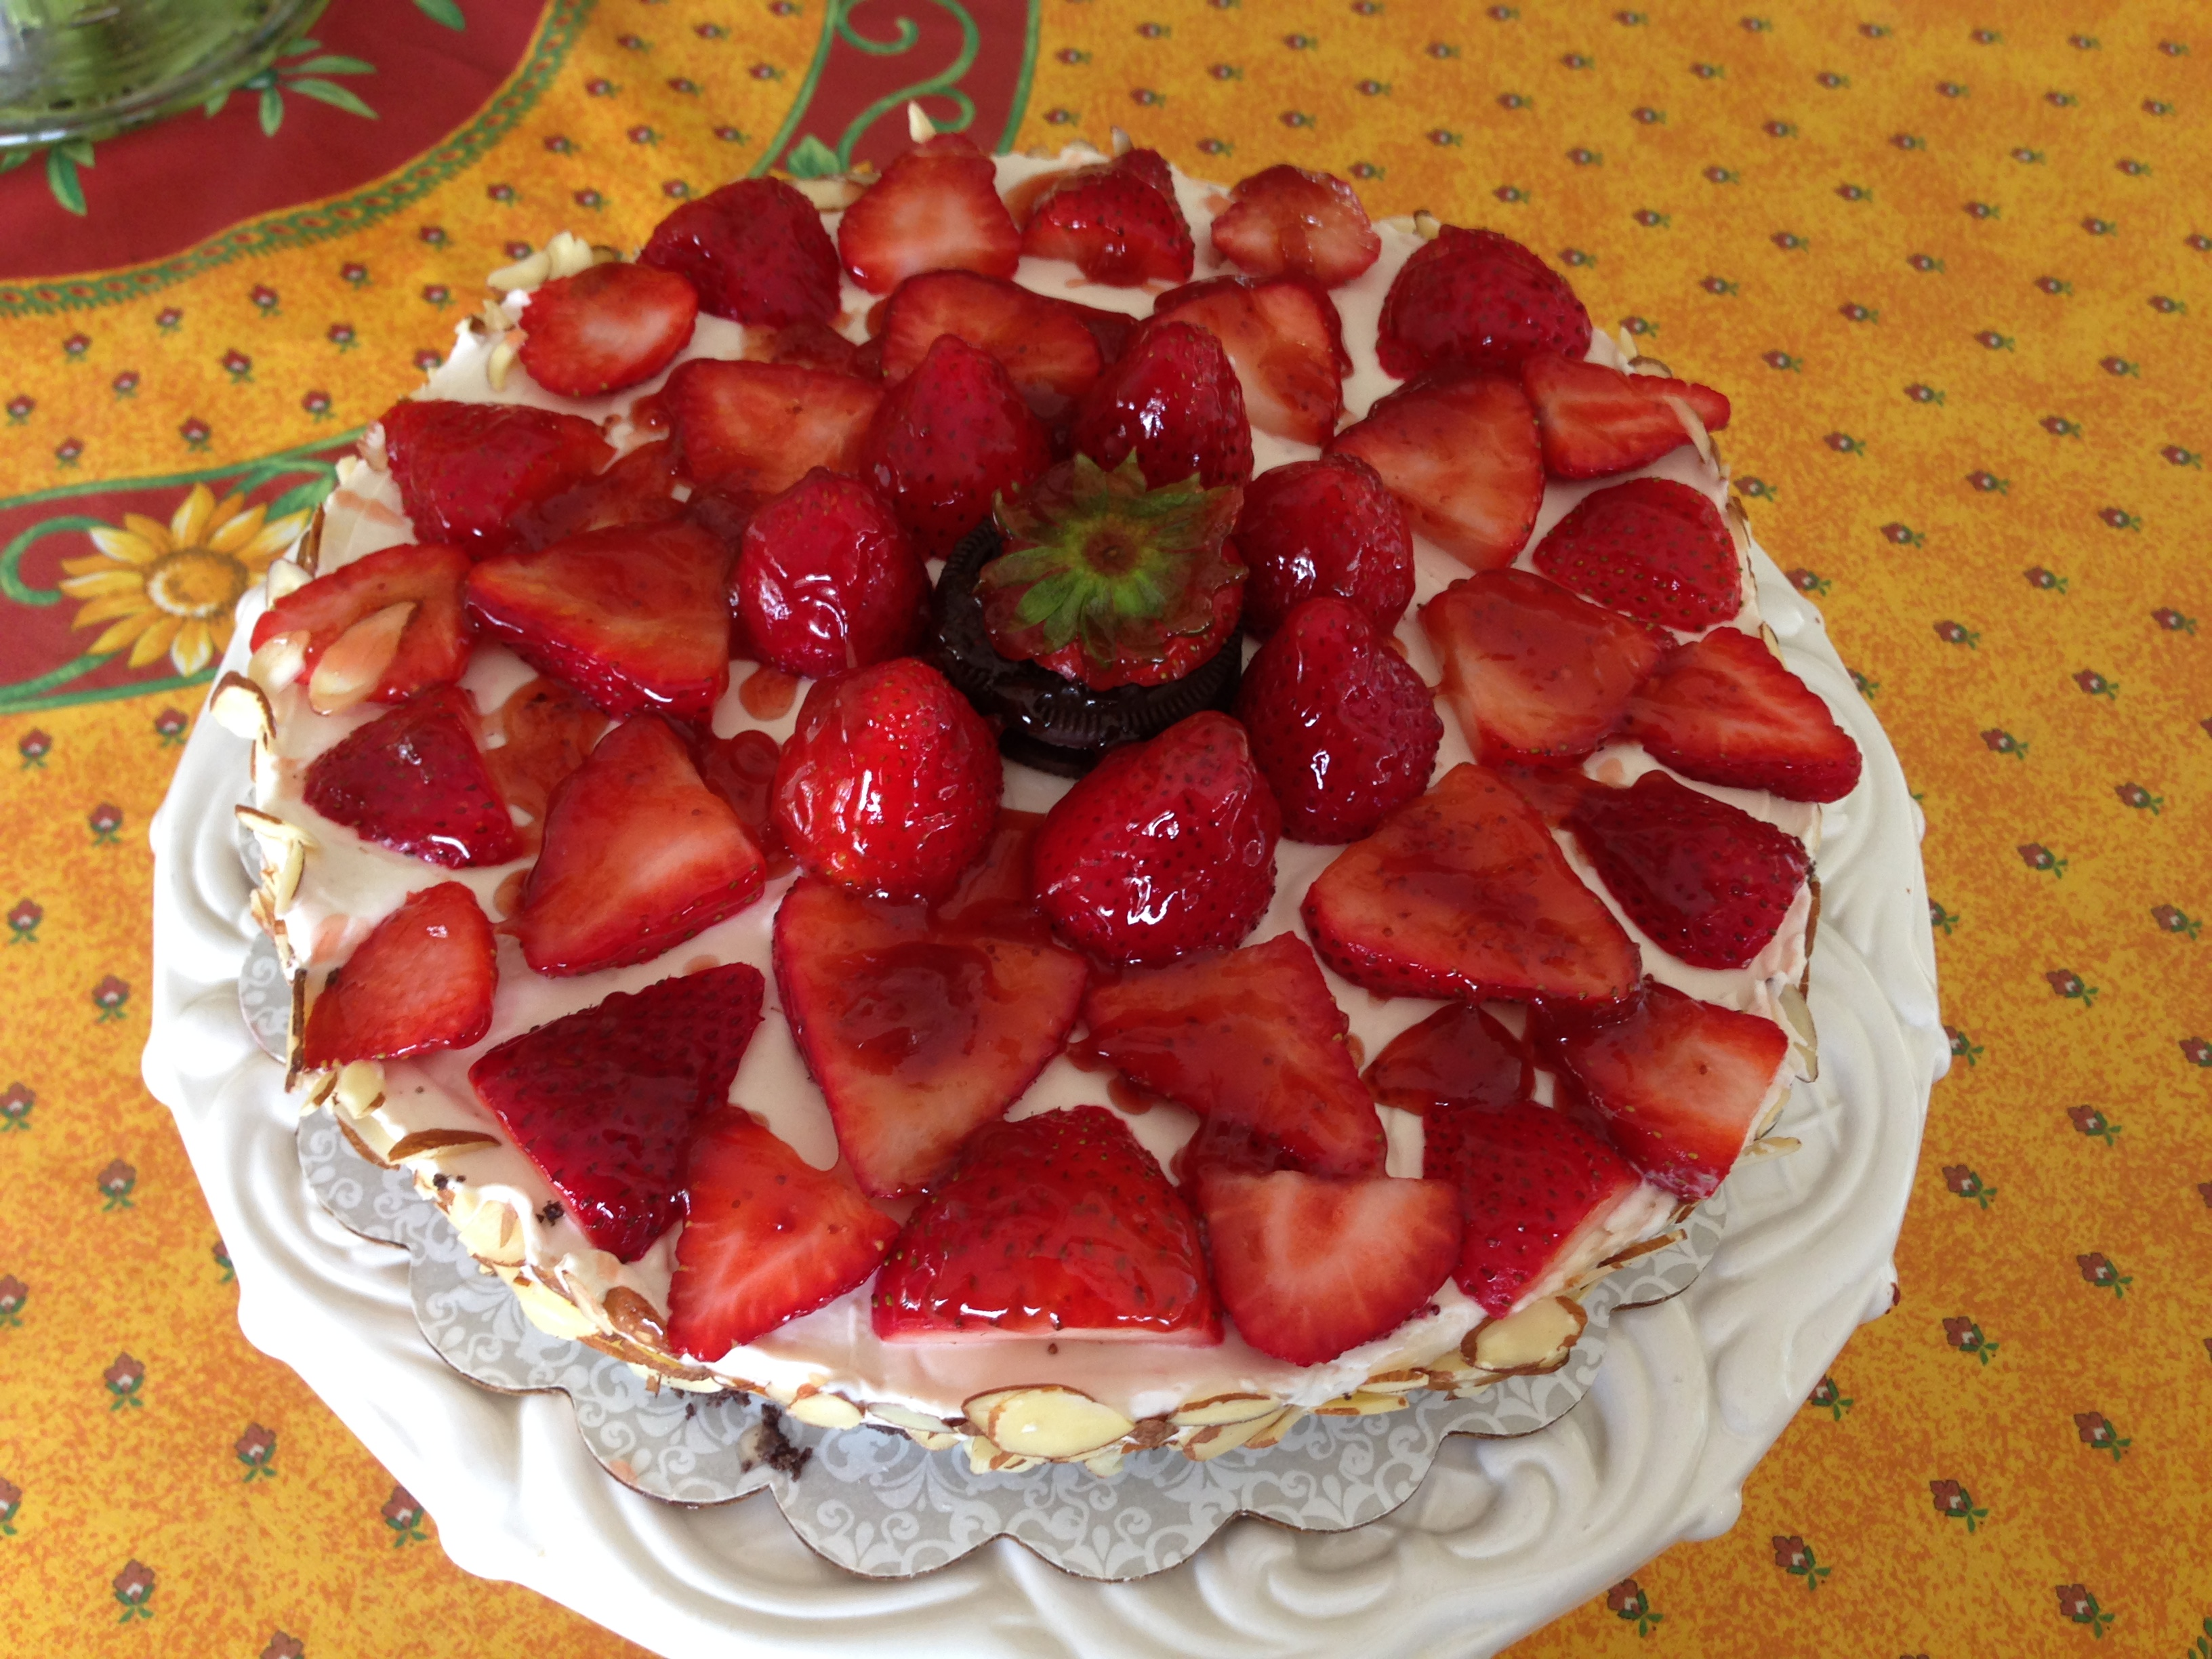 ... OREO CHEESECAKE with STRAWBERRY COULIS | Mary's Joy of Family Cooking